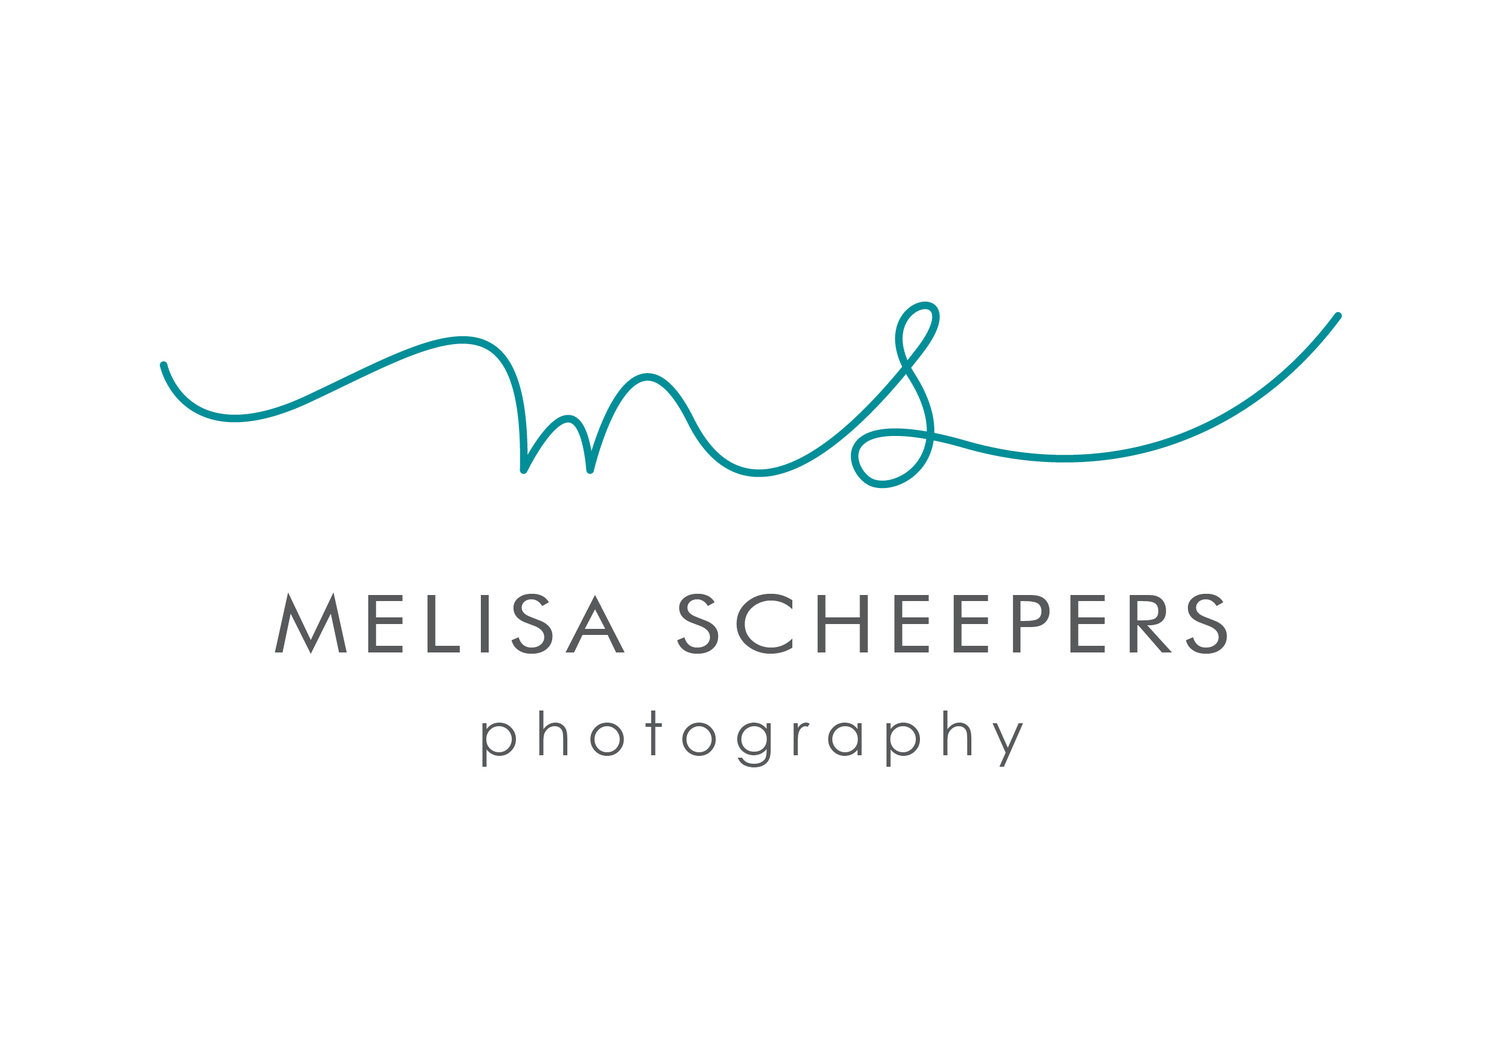 Melisa Scheepers Photography